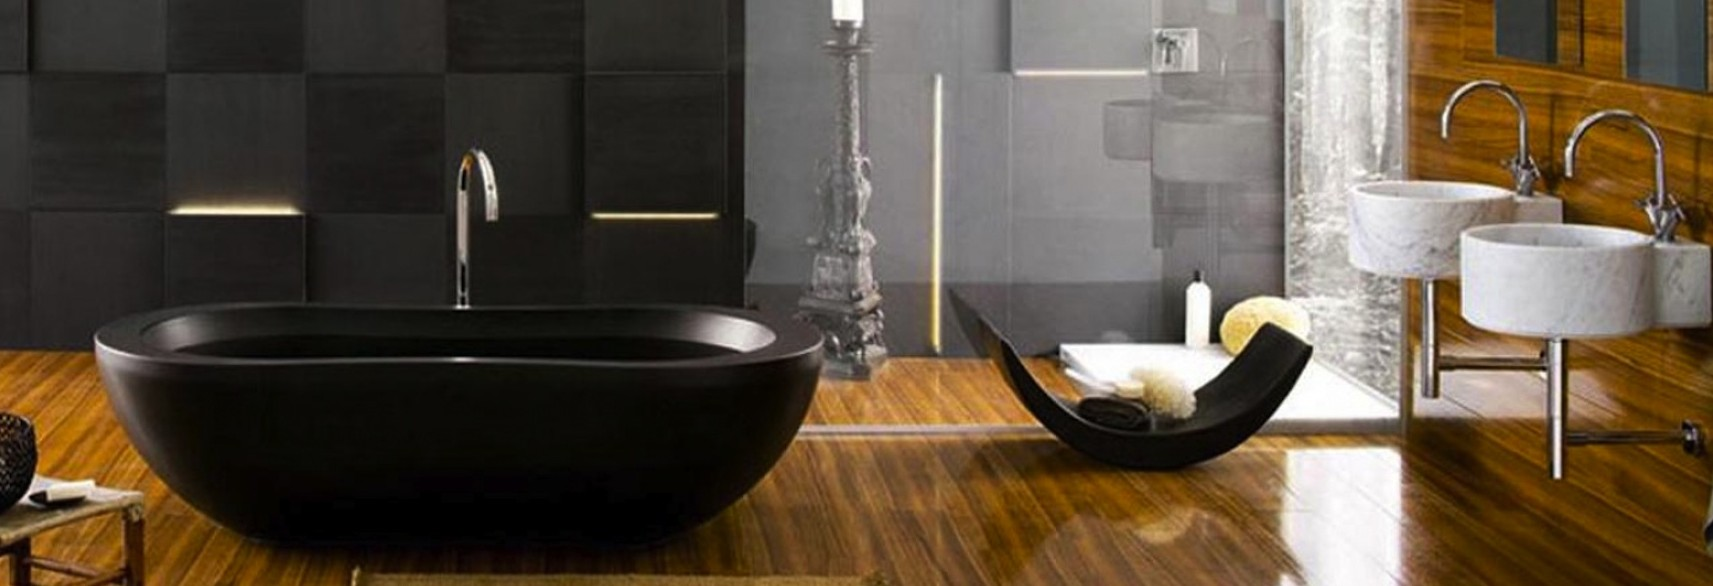 bathroom-interior-lovely-design-on-architecture-pictures